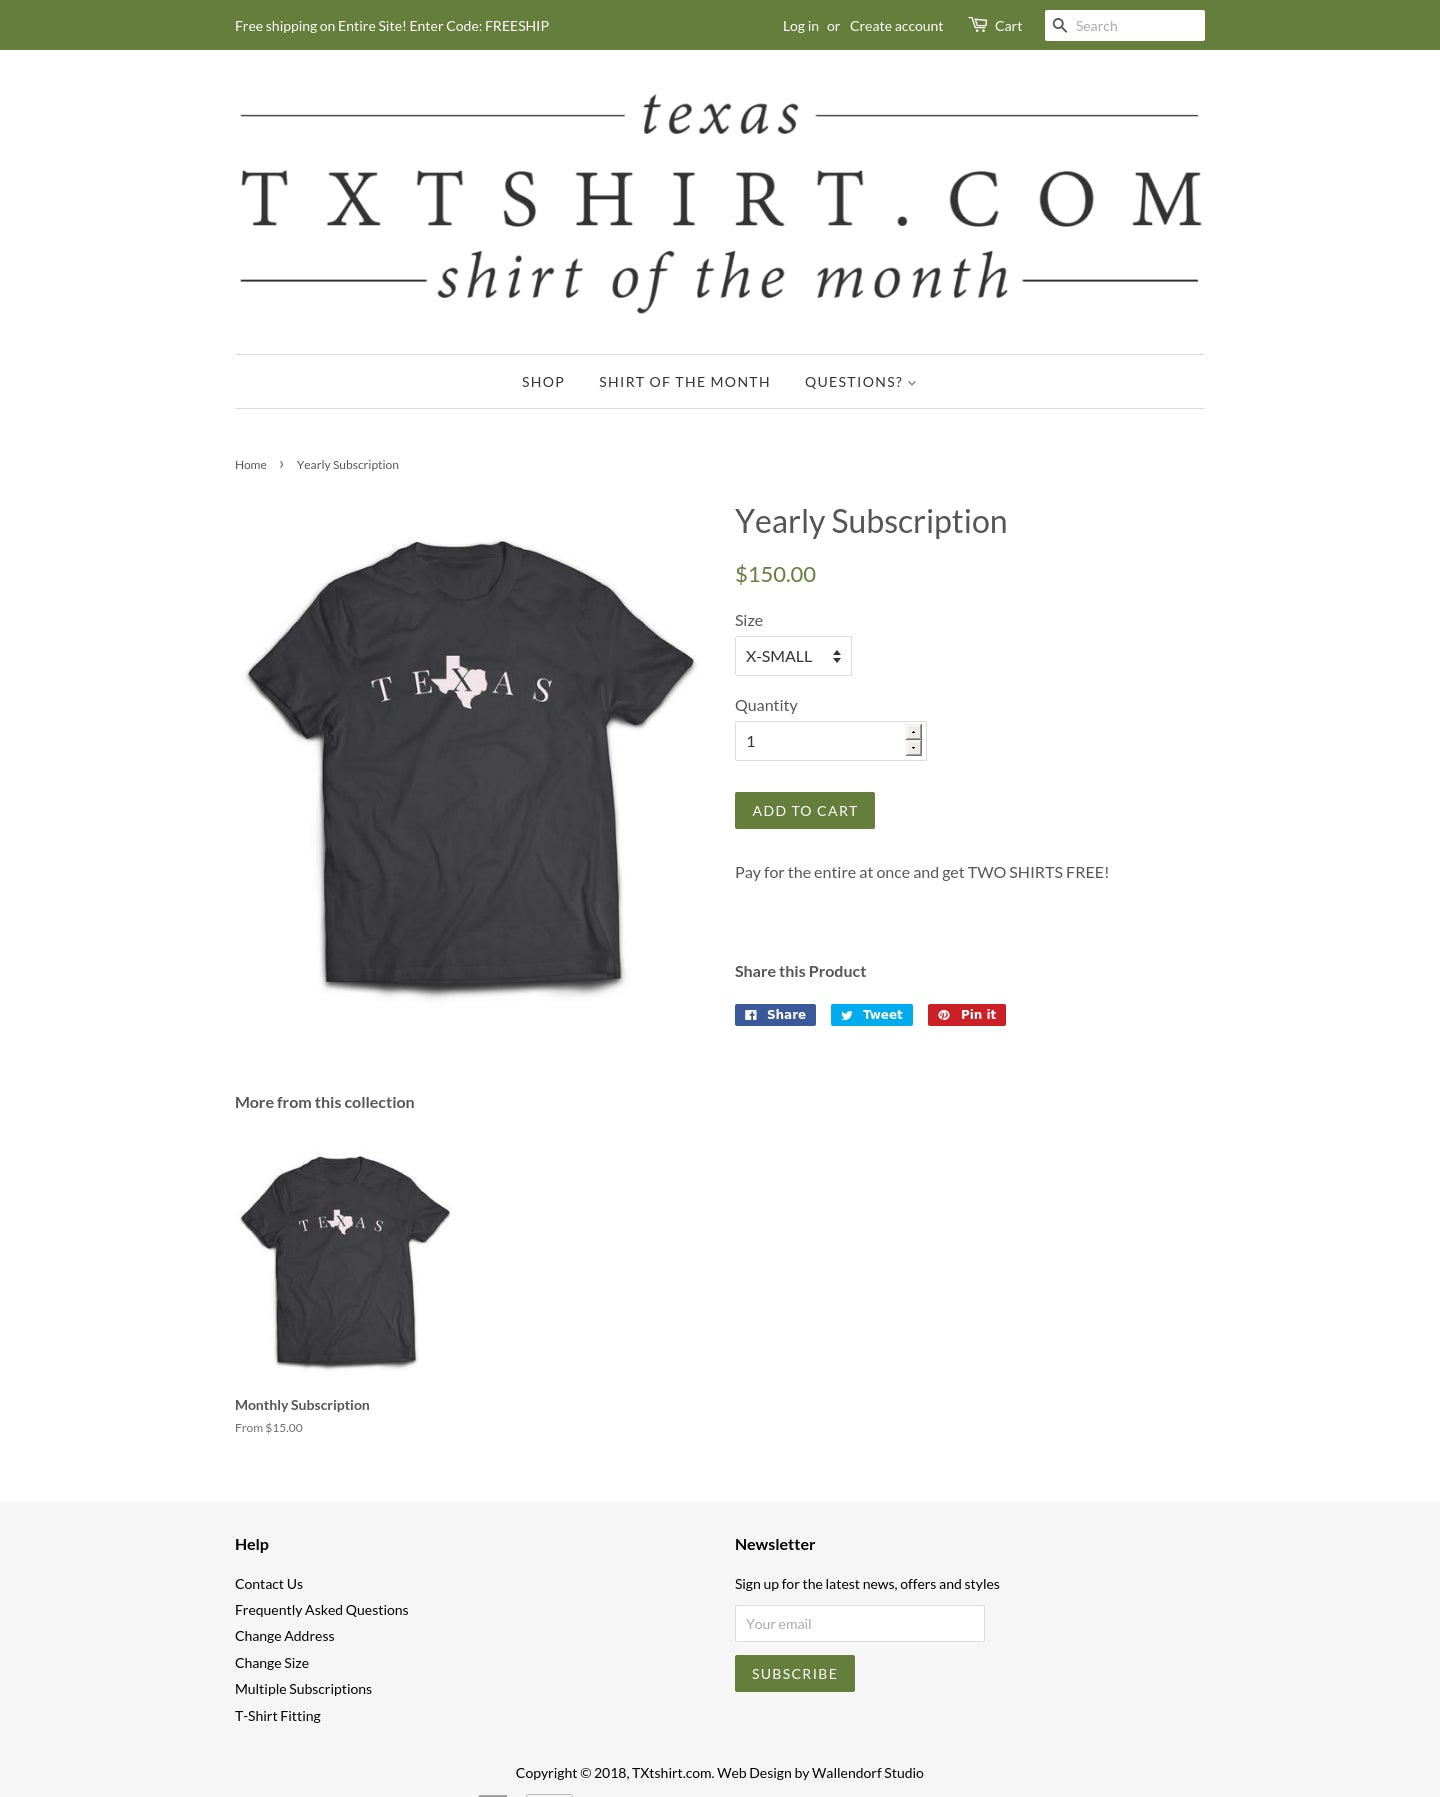 TXtshirt.com Screenshot - 1